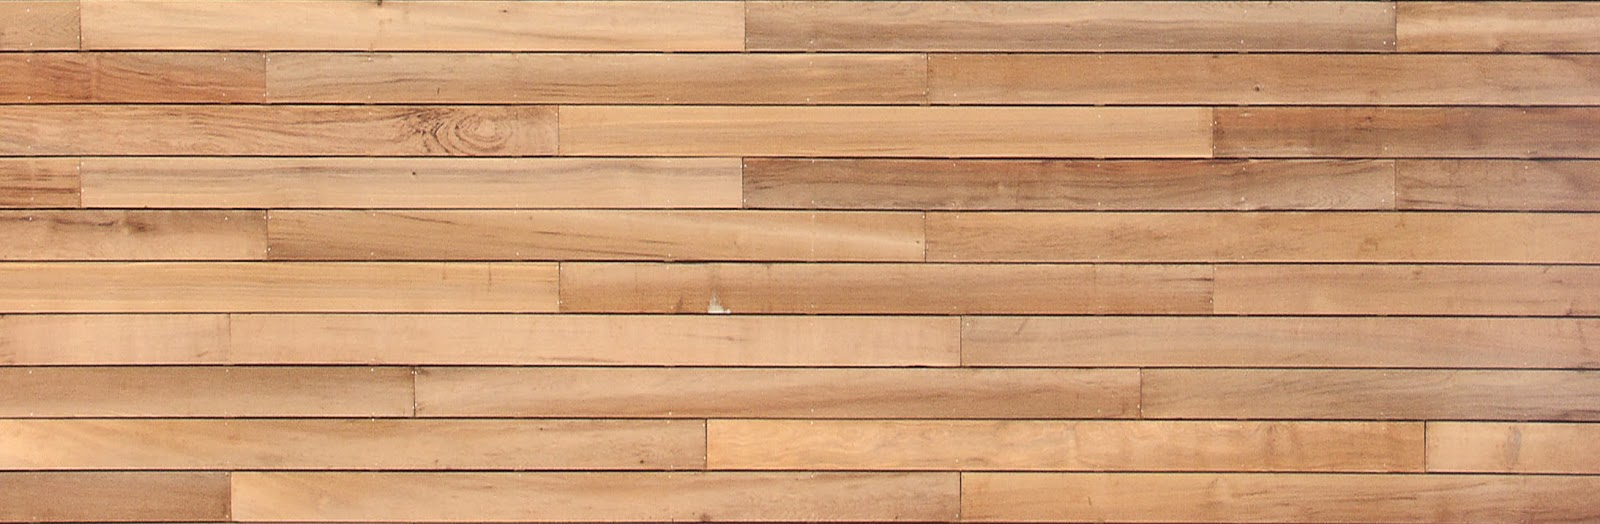 Tileable wood planks clean maps texturise free for Wood plank seamless texture